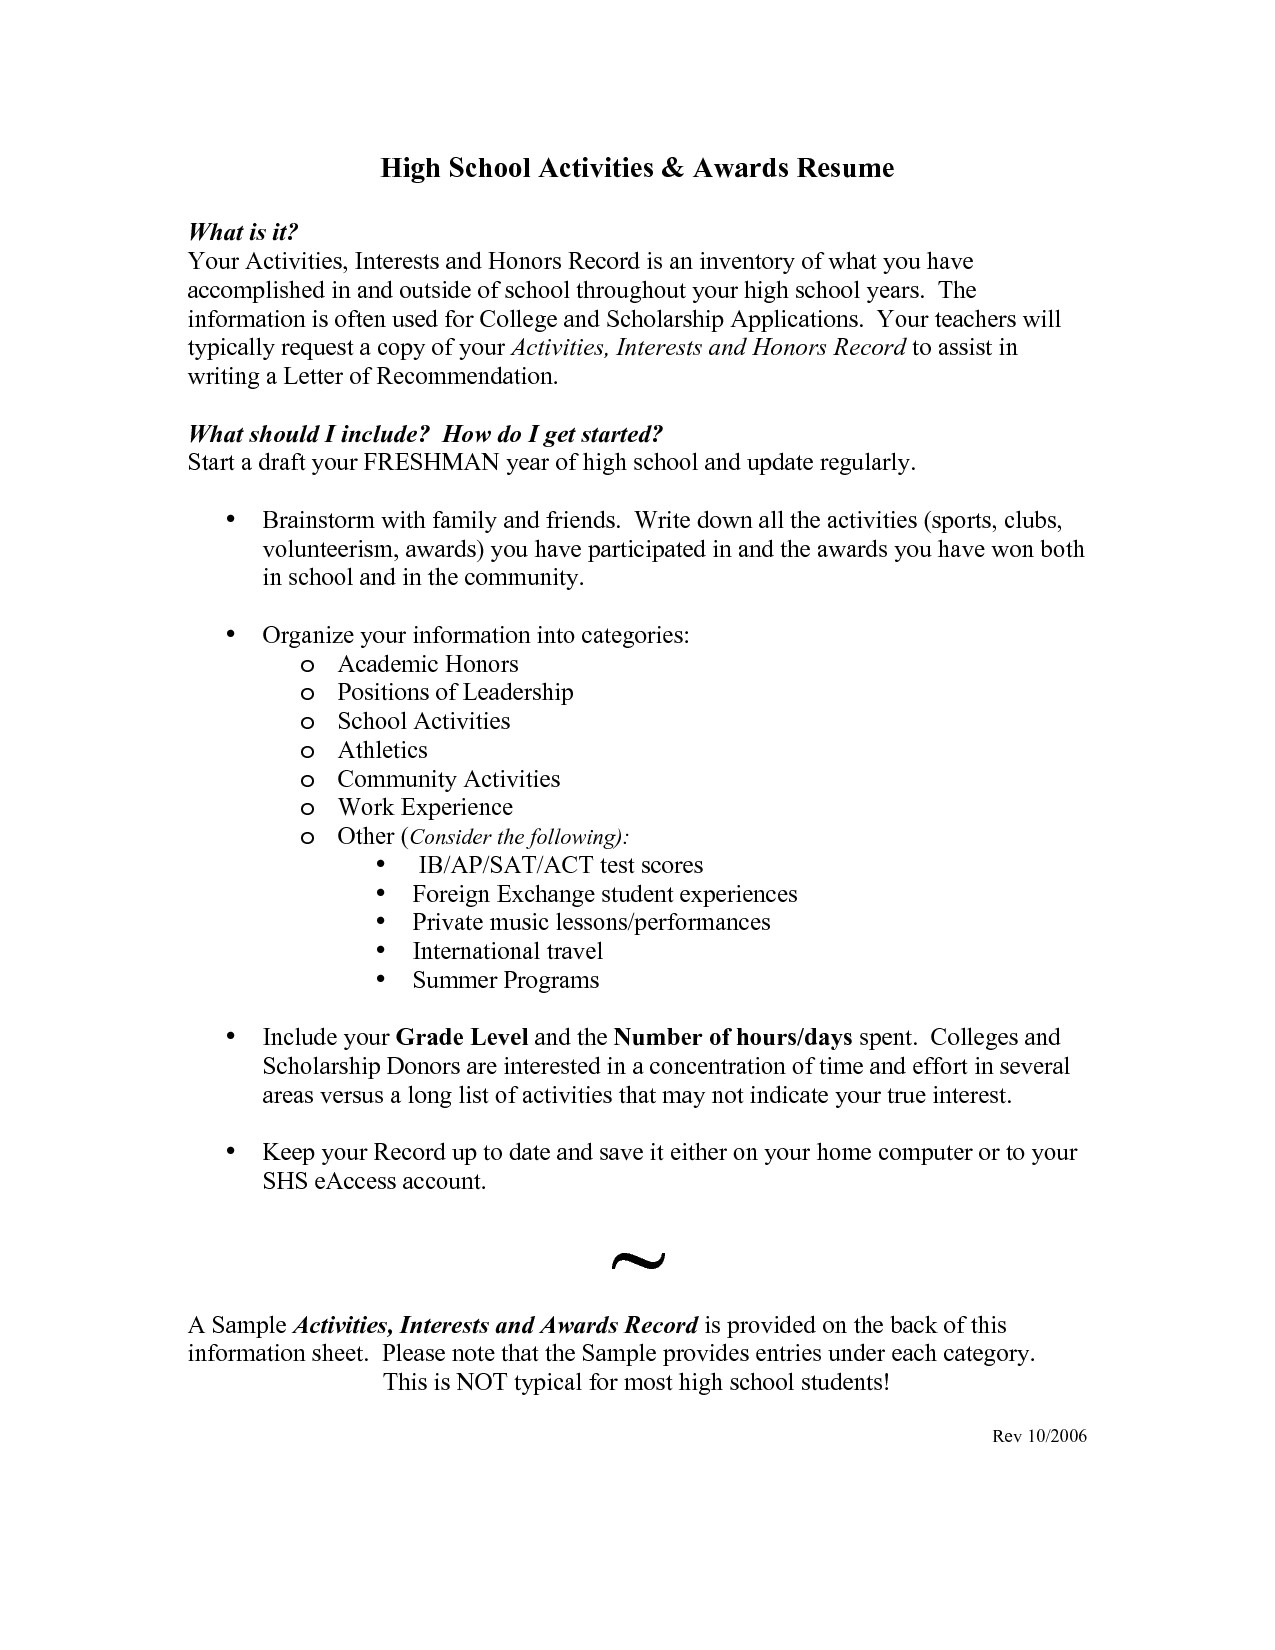 Sample Resume for High School Student Applying to College Example Resume for High School Student for College